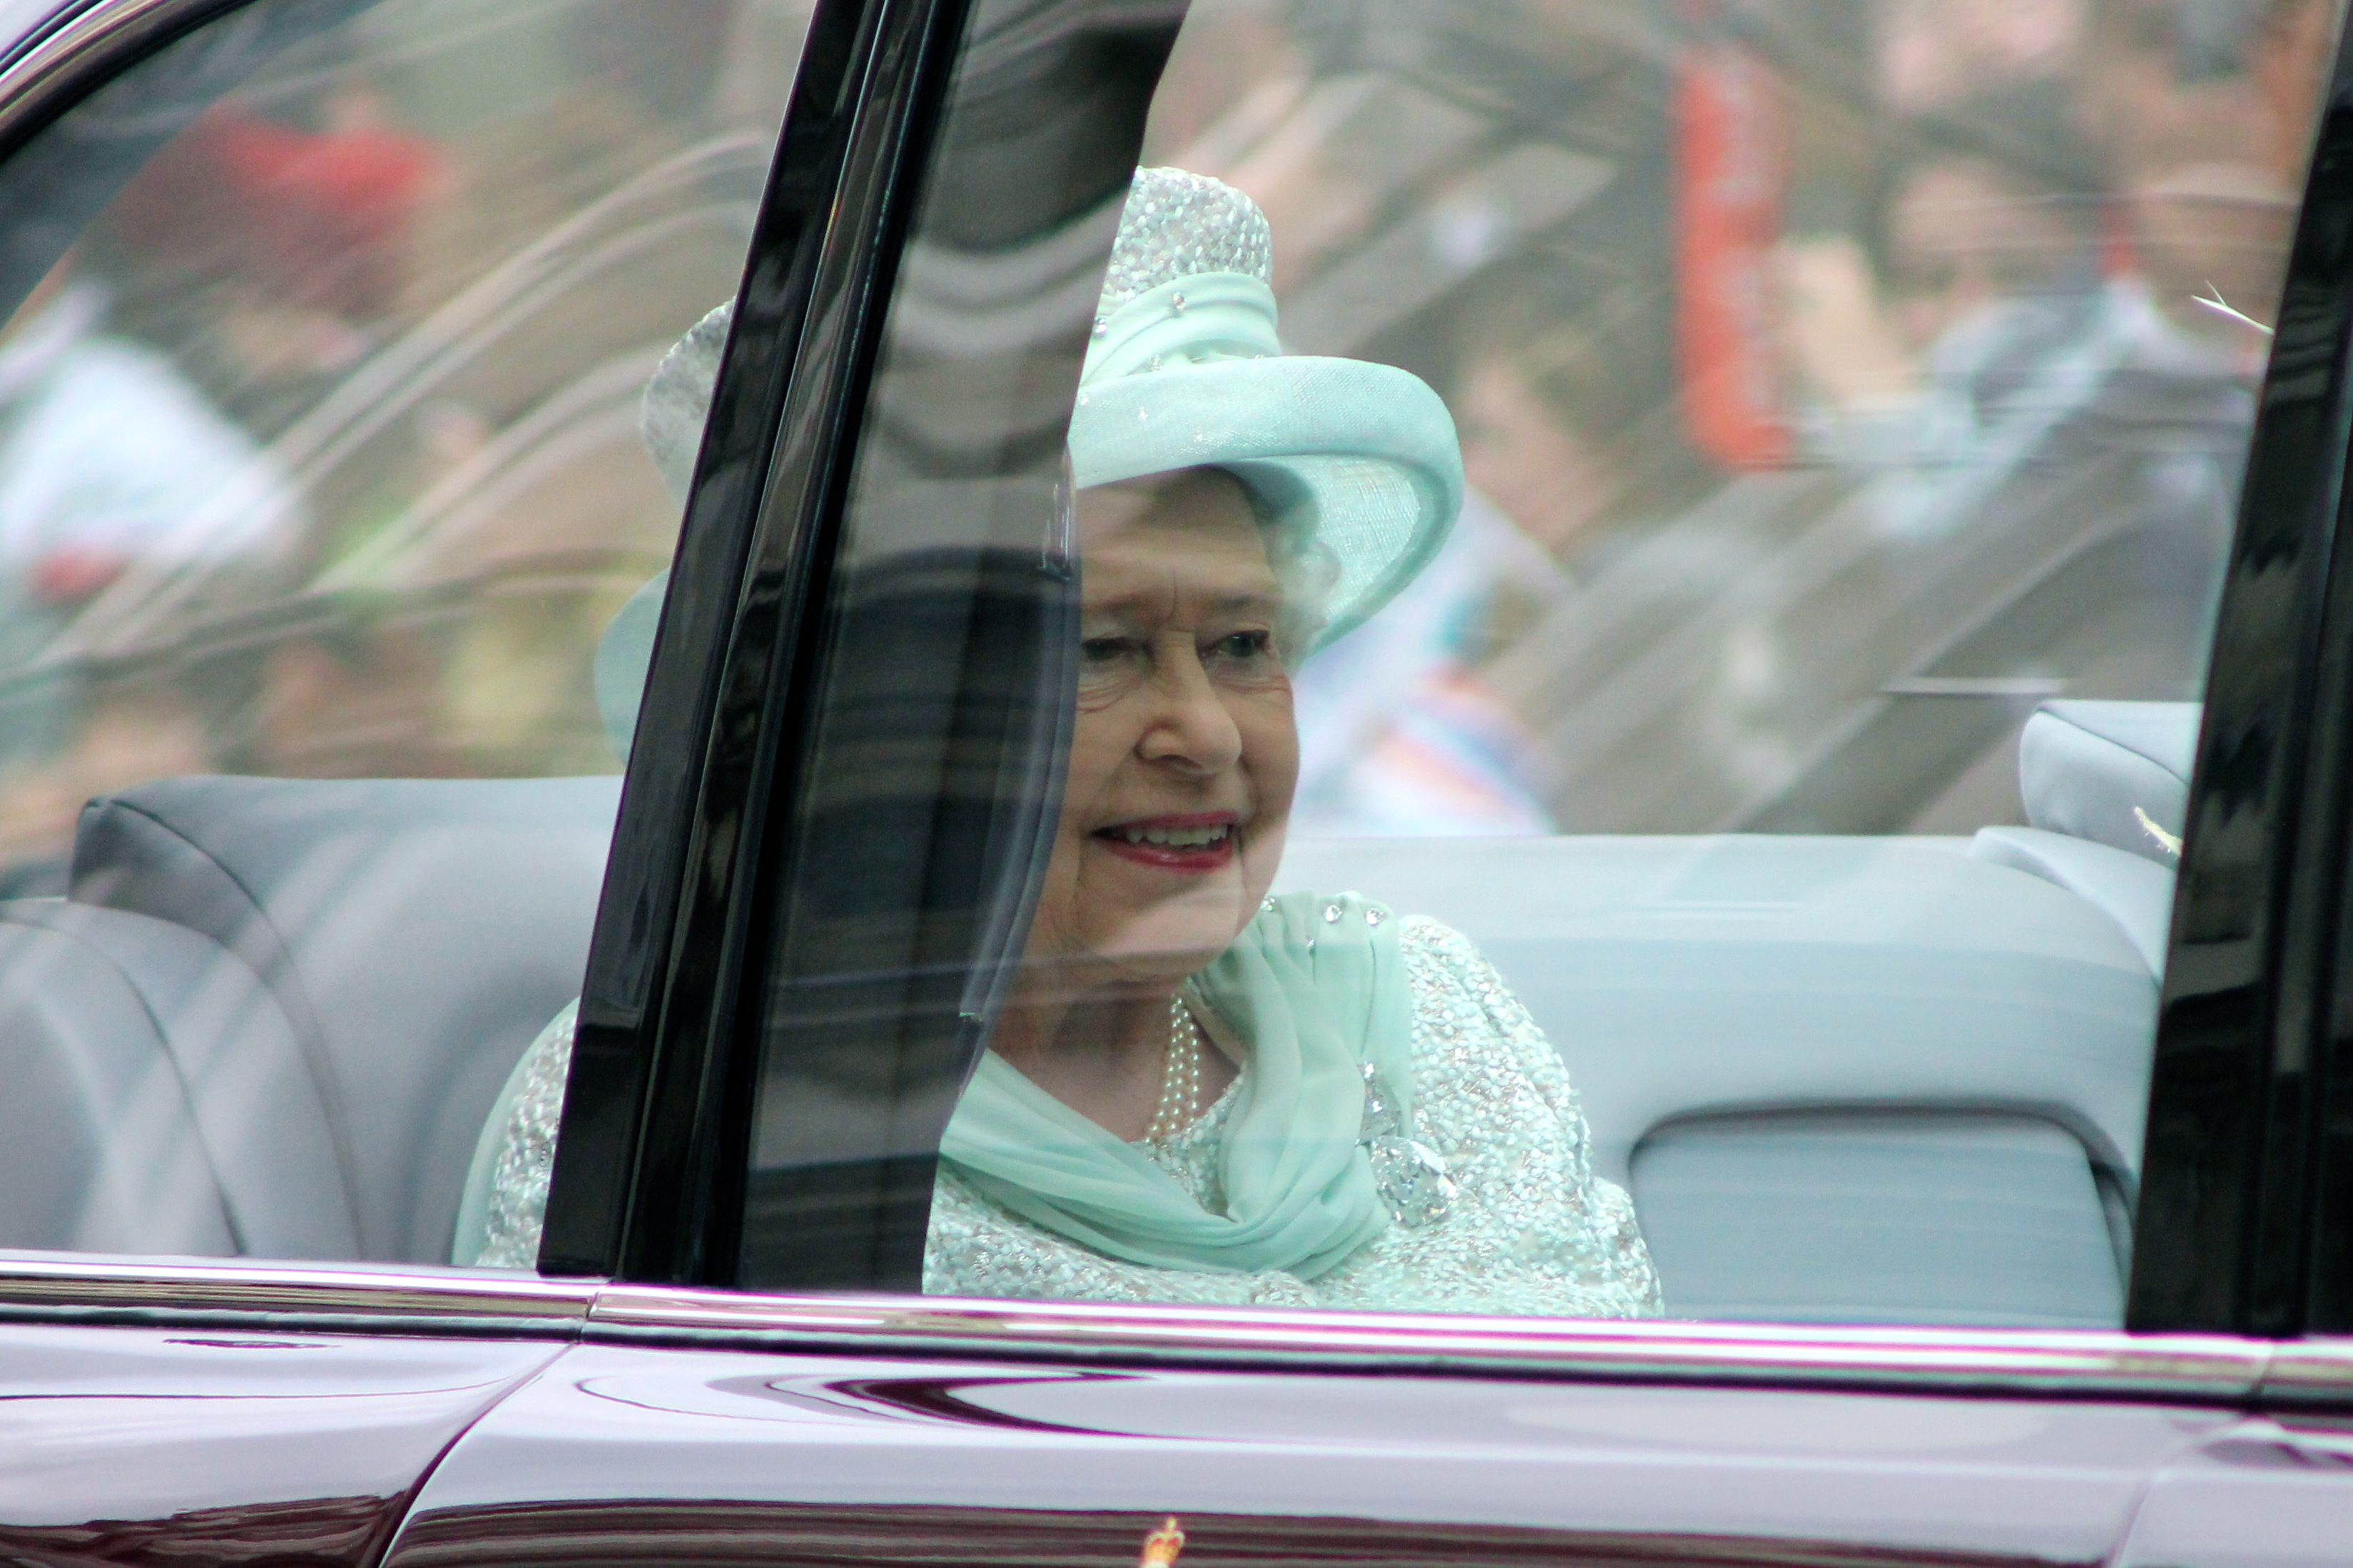 Queen Elizabeth II in her car on a tour.